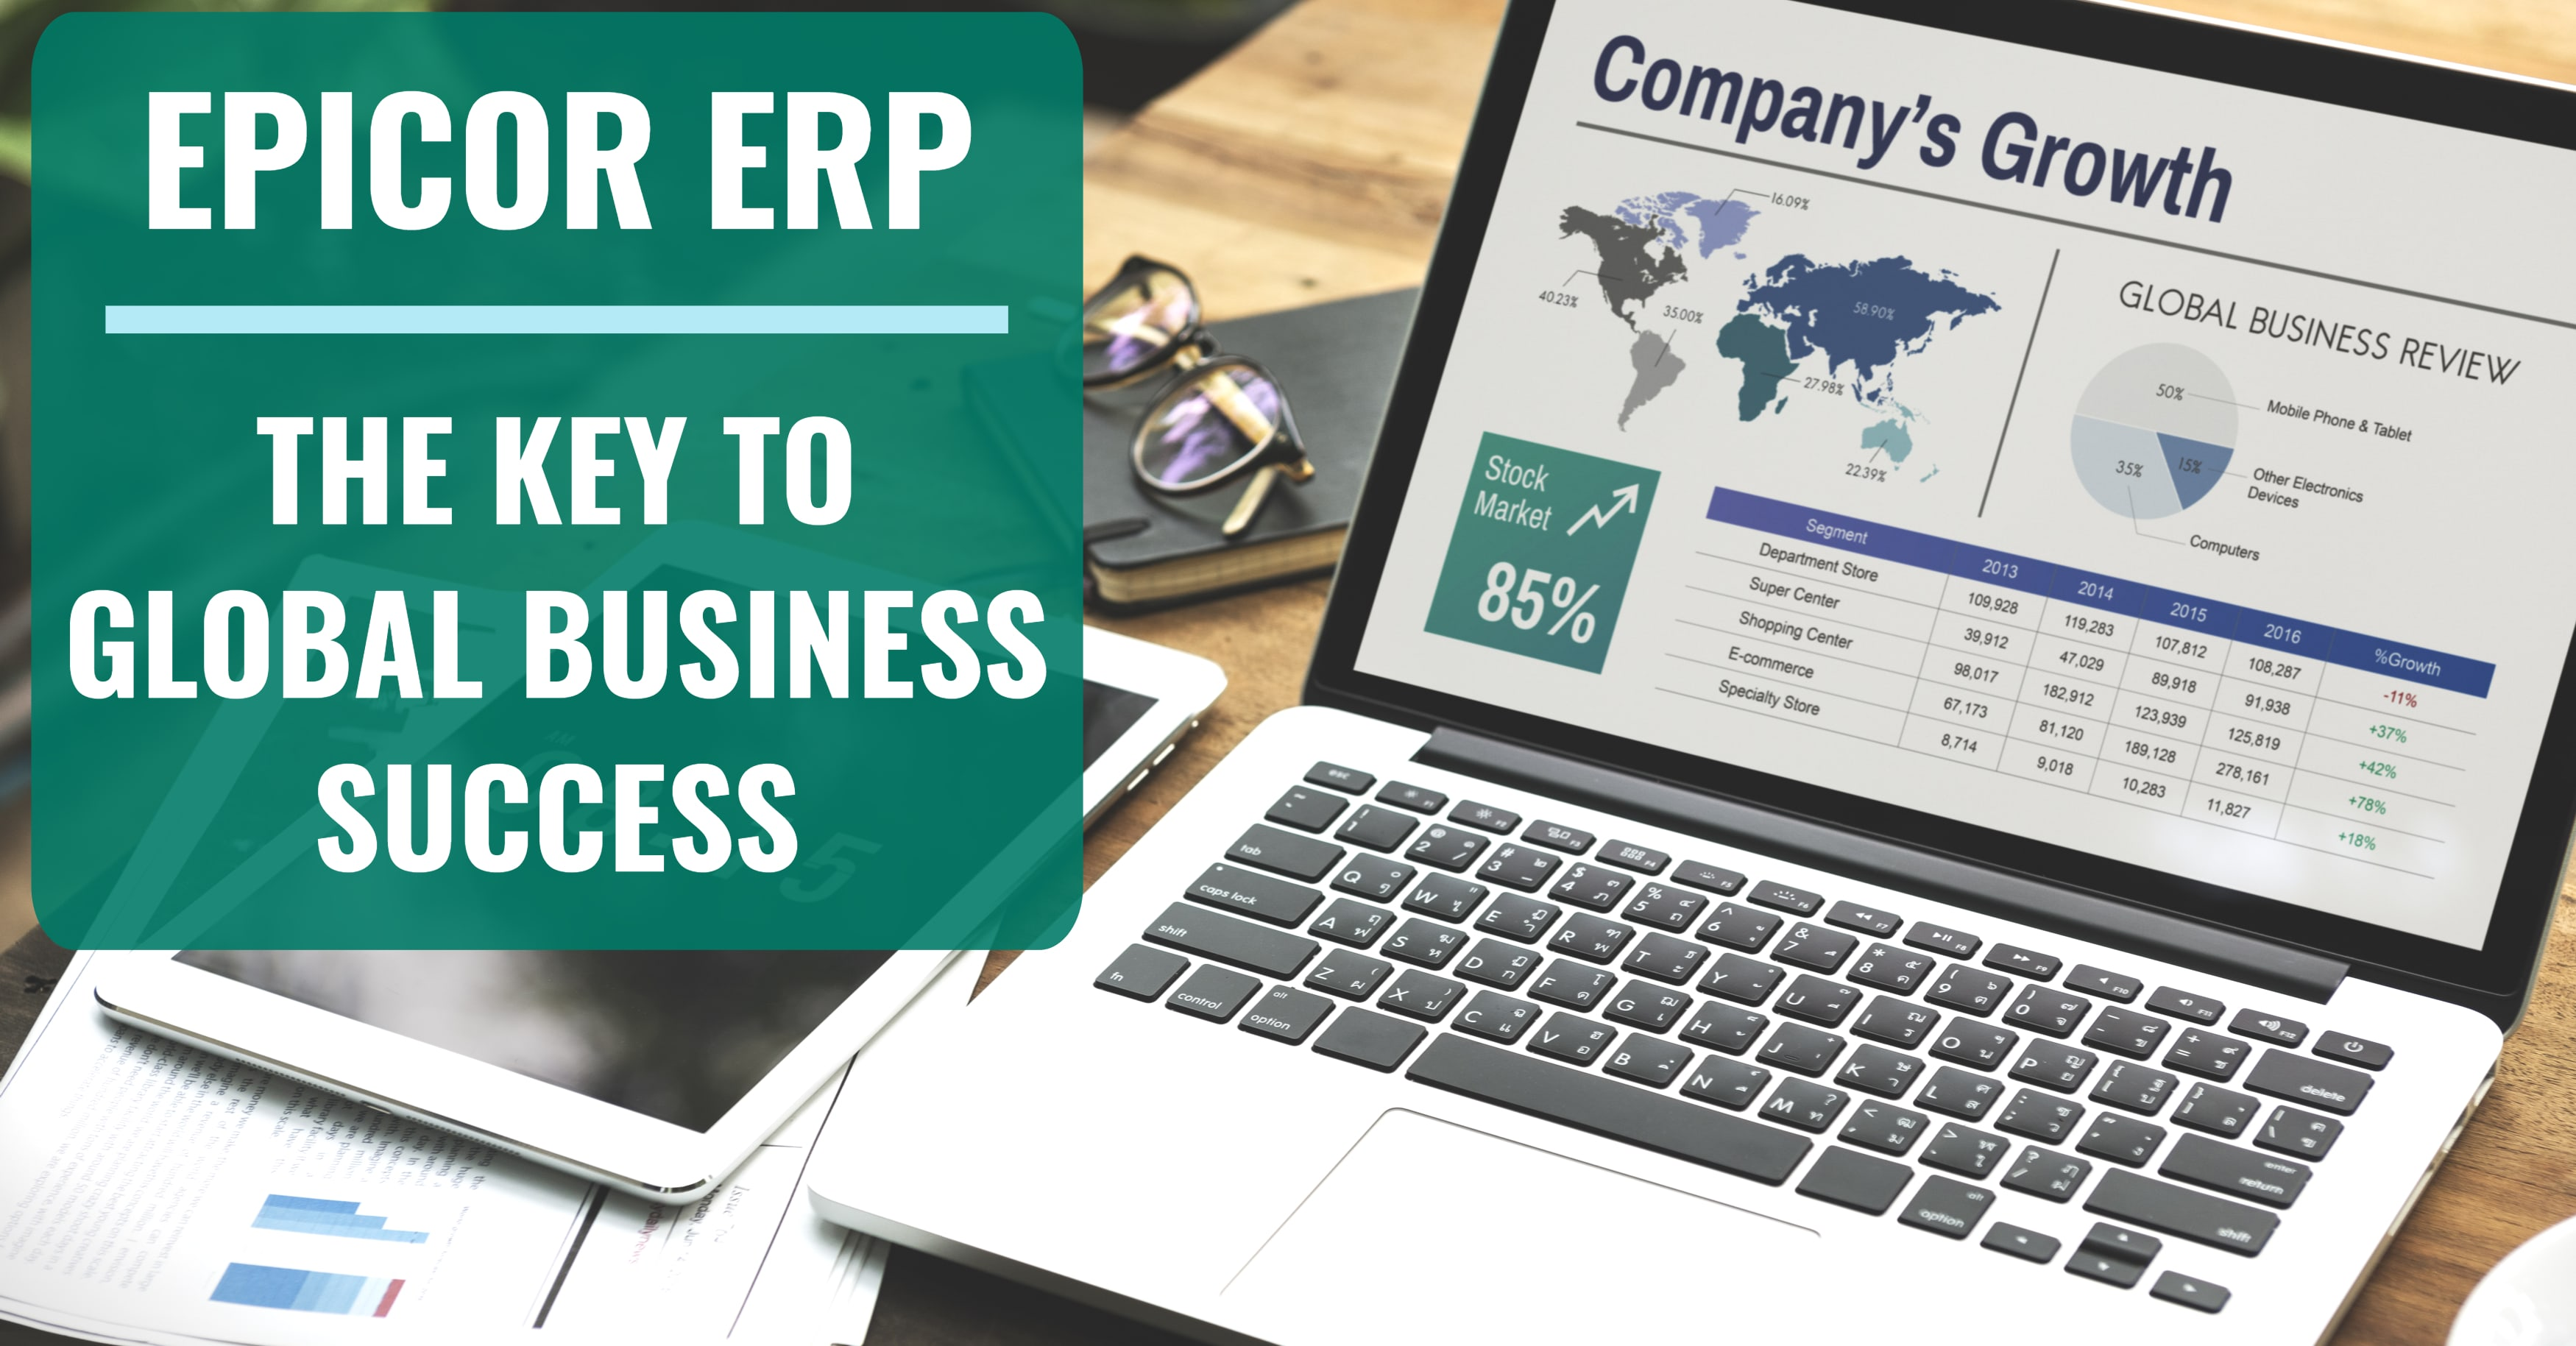 Epicor ERP: The Key to Global Business Success